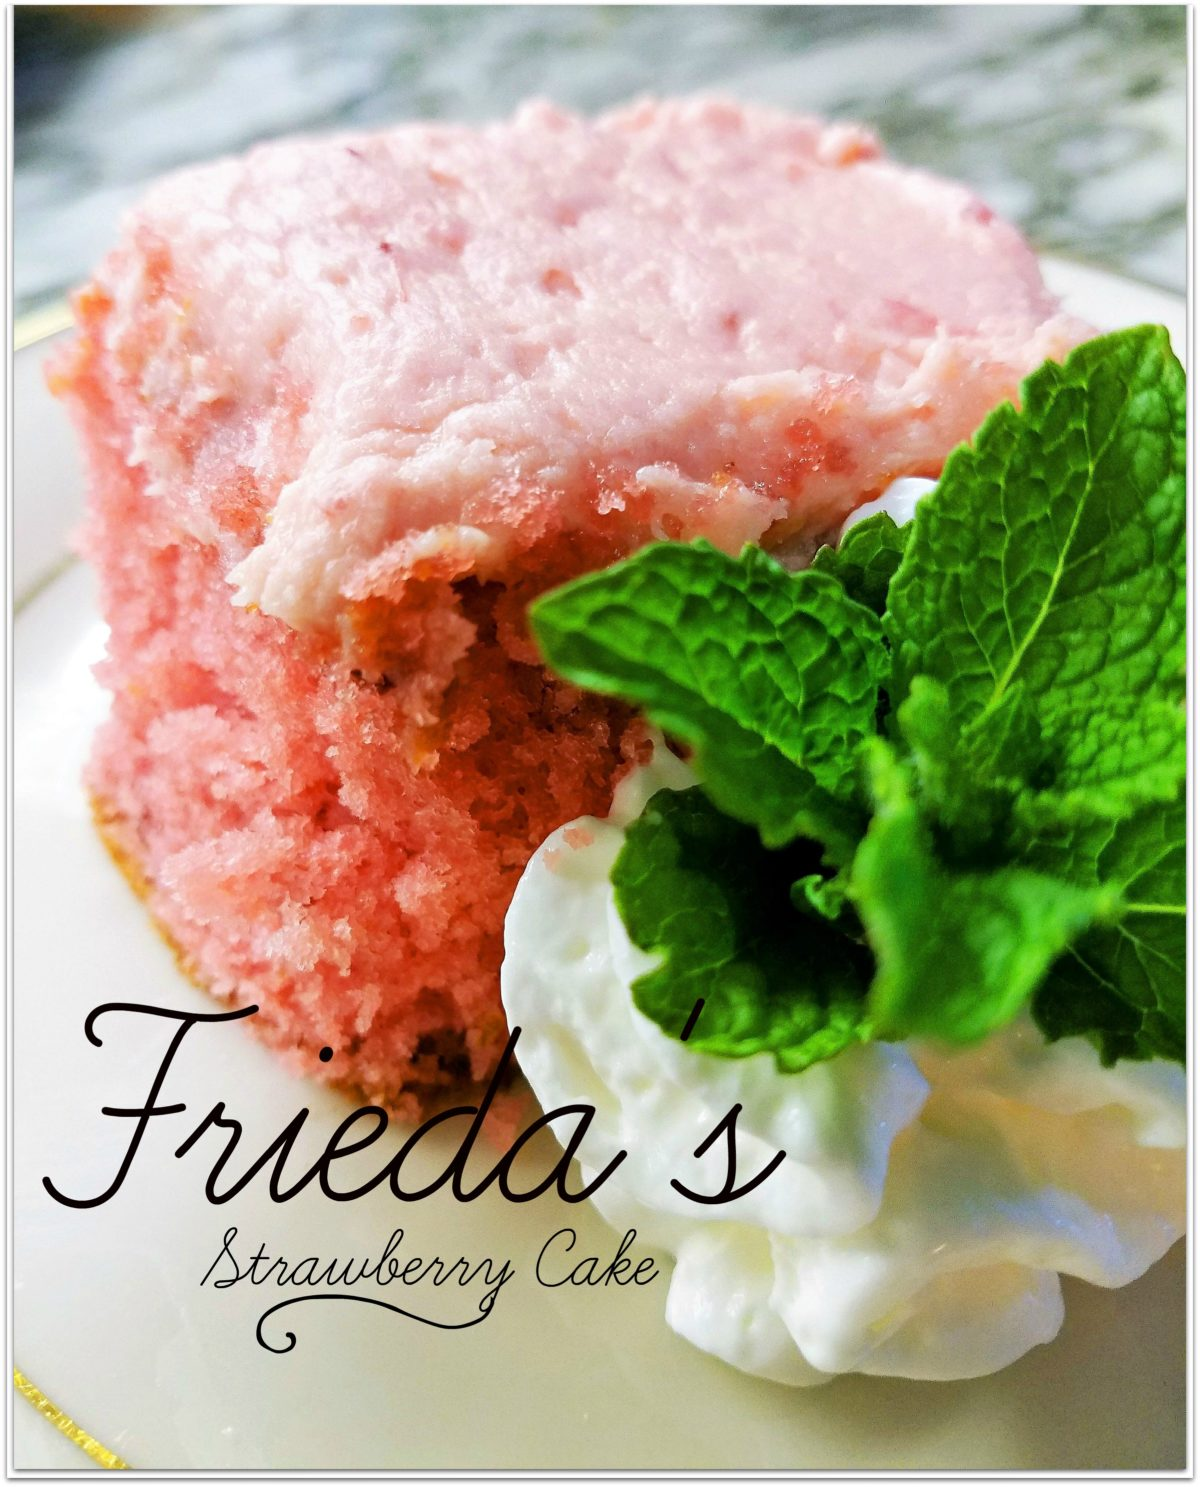 The Legend of Frieda's Strawberry Cake